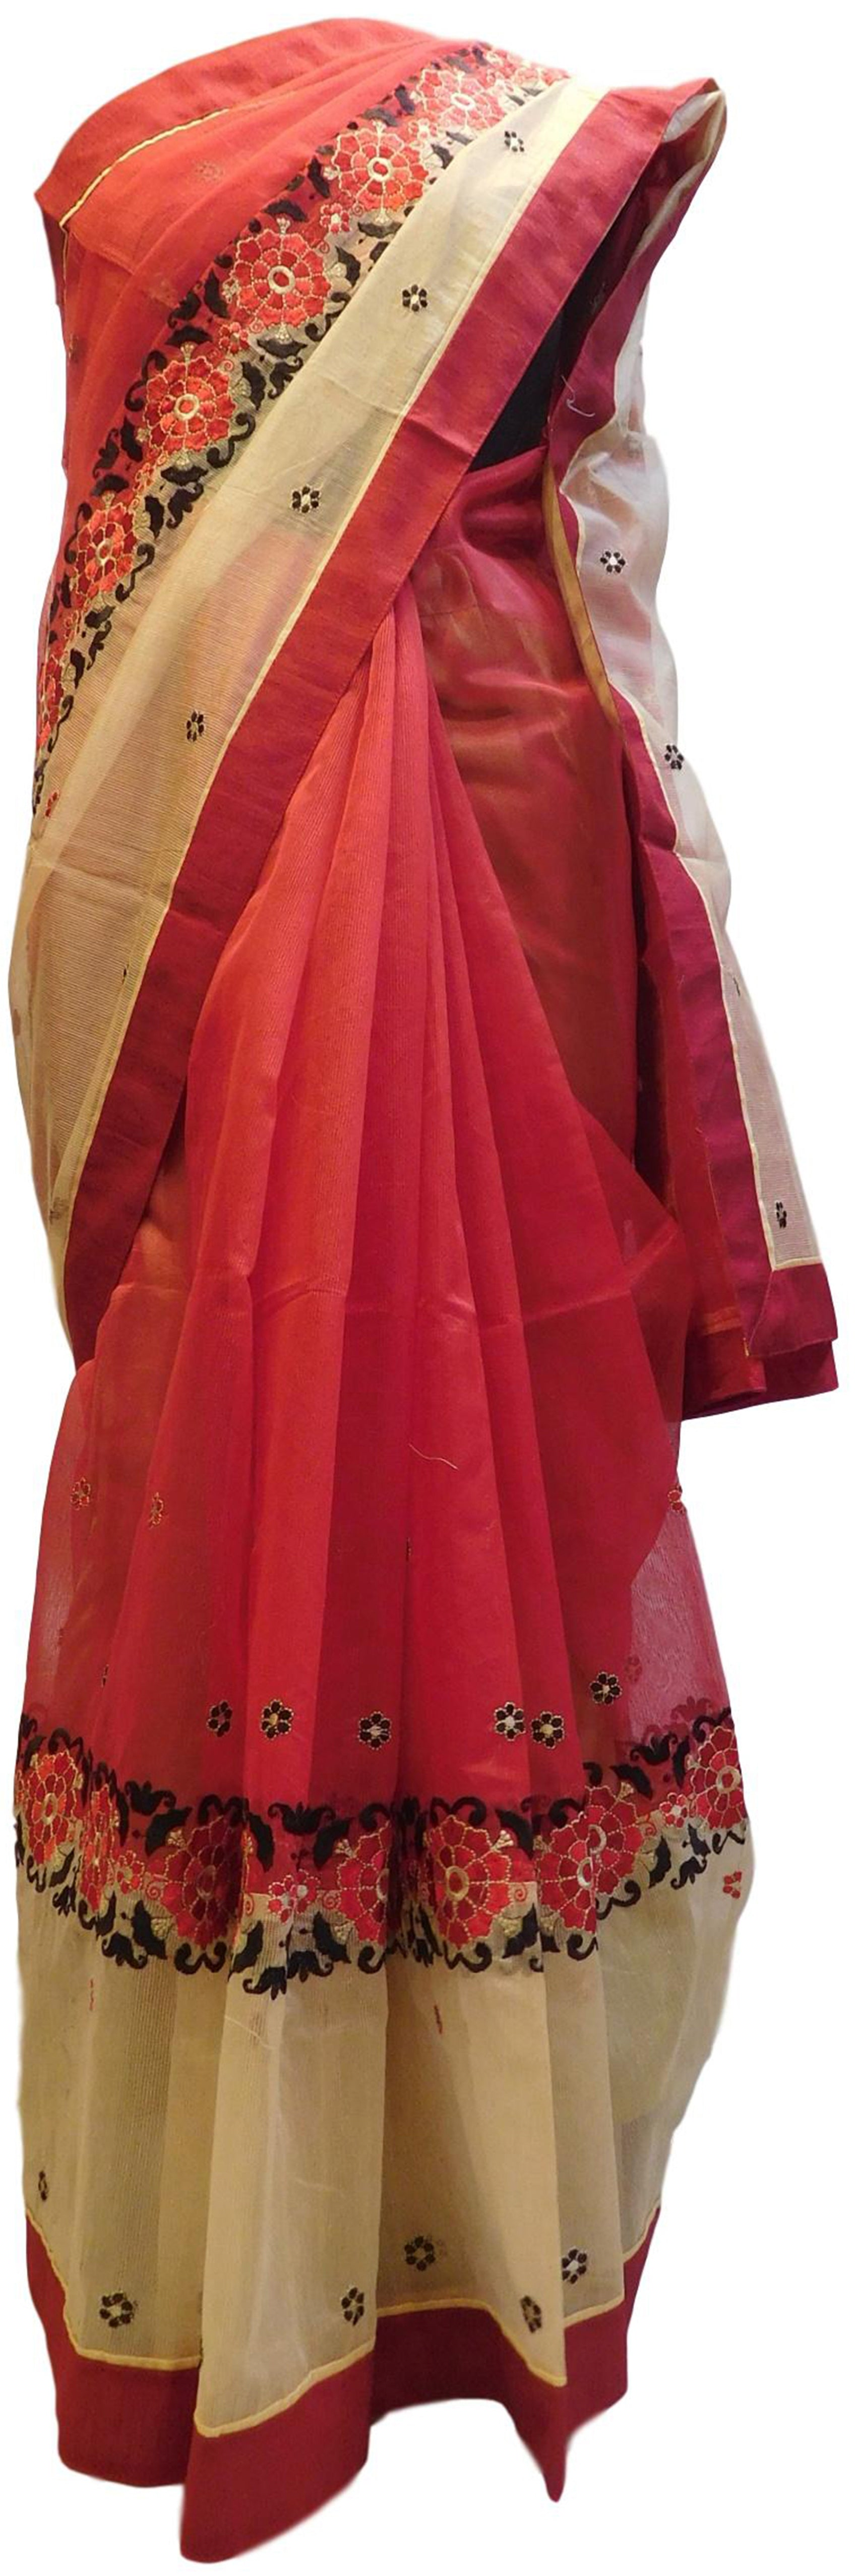 Red & Cream Designer PartyWear Pure Supernet (Cotton) Thread Work Saree Sari With Red Taping